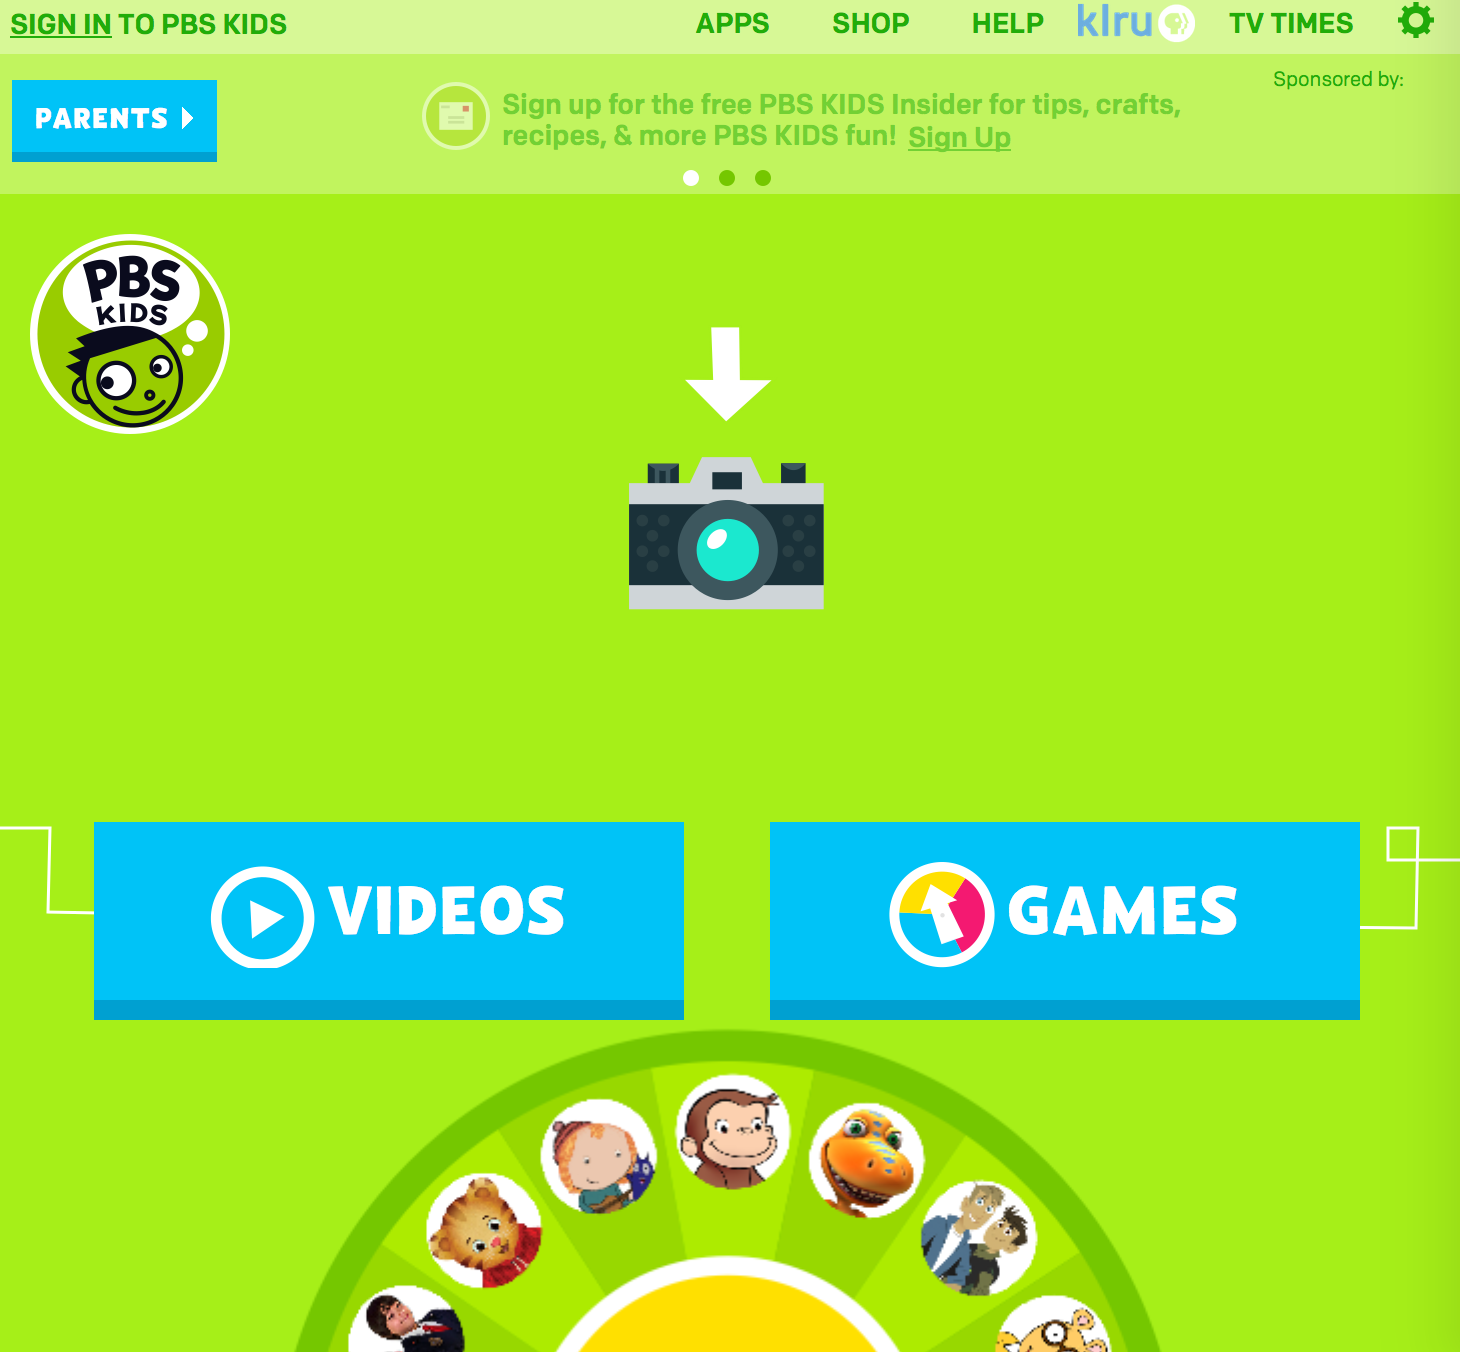 Hierarchy 20 Pbs kids, Video games for kids, Pbs kids videos